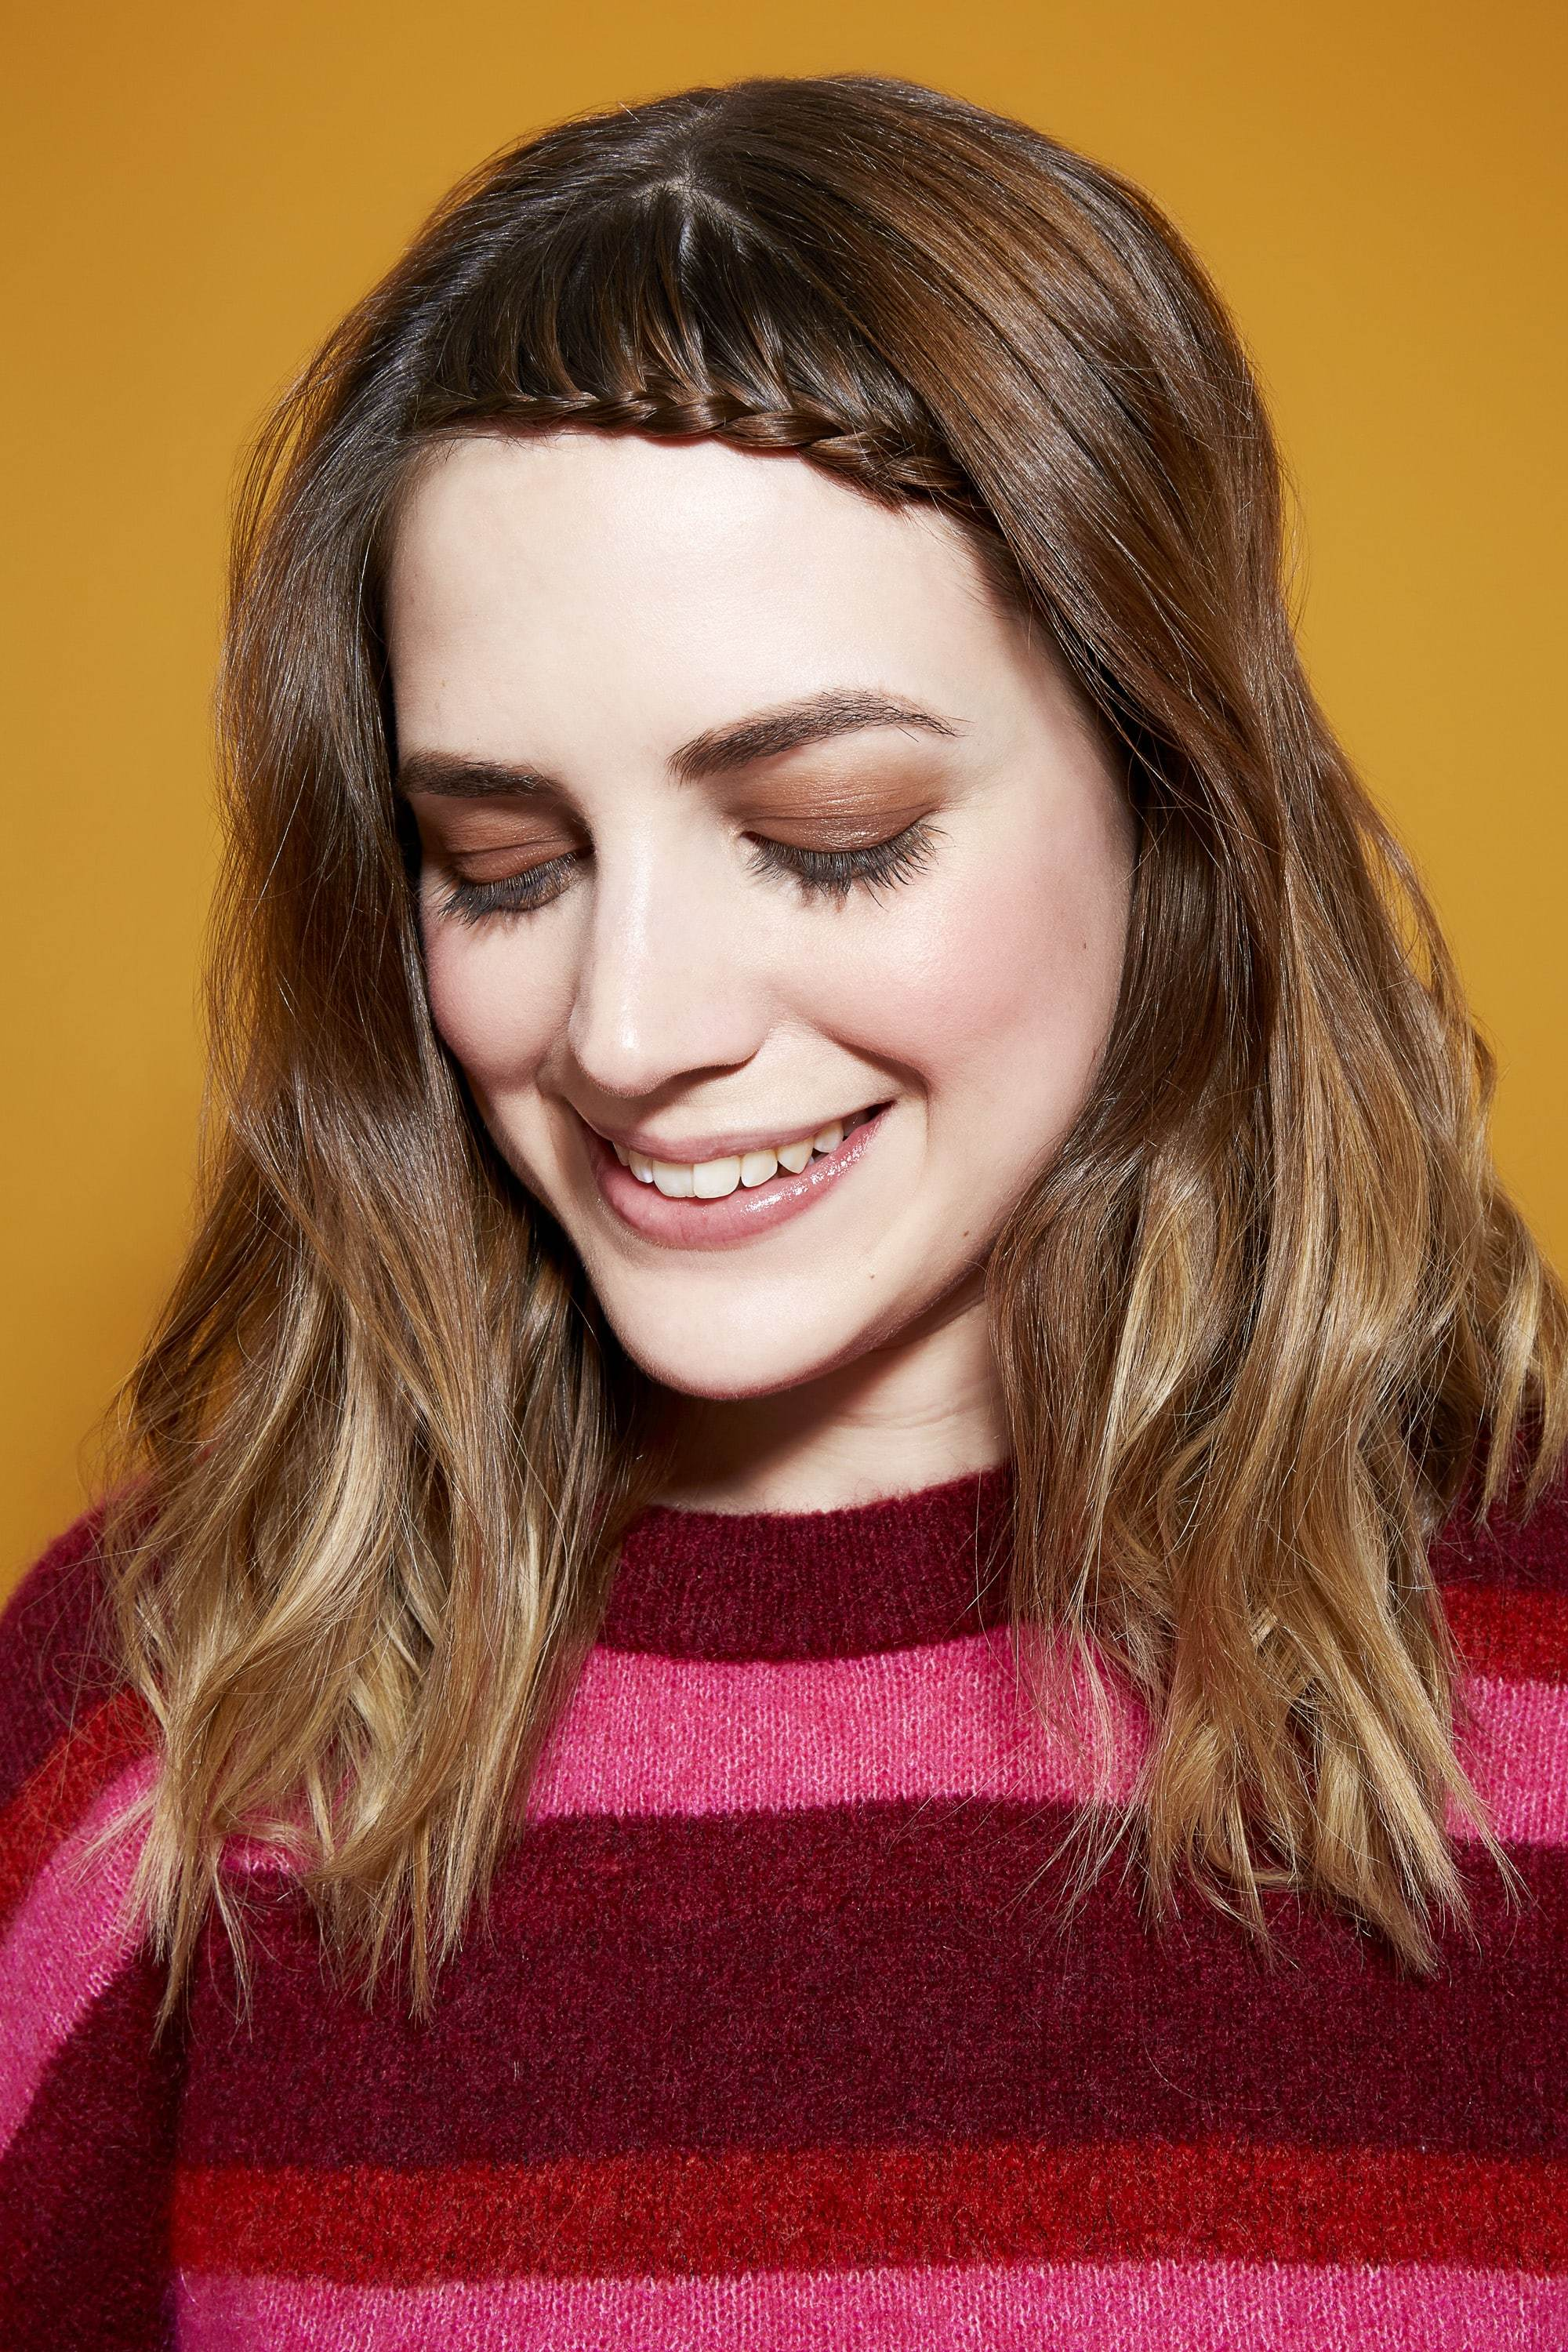 Easy braids for long hair: Brunette woman with braided bangs, wearing a pink and burgundy striped jumper